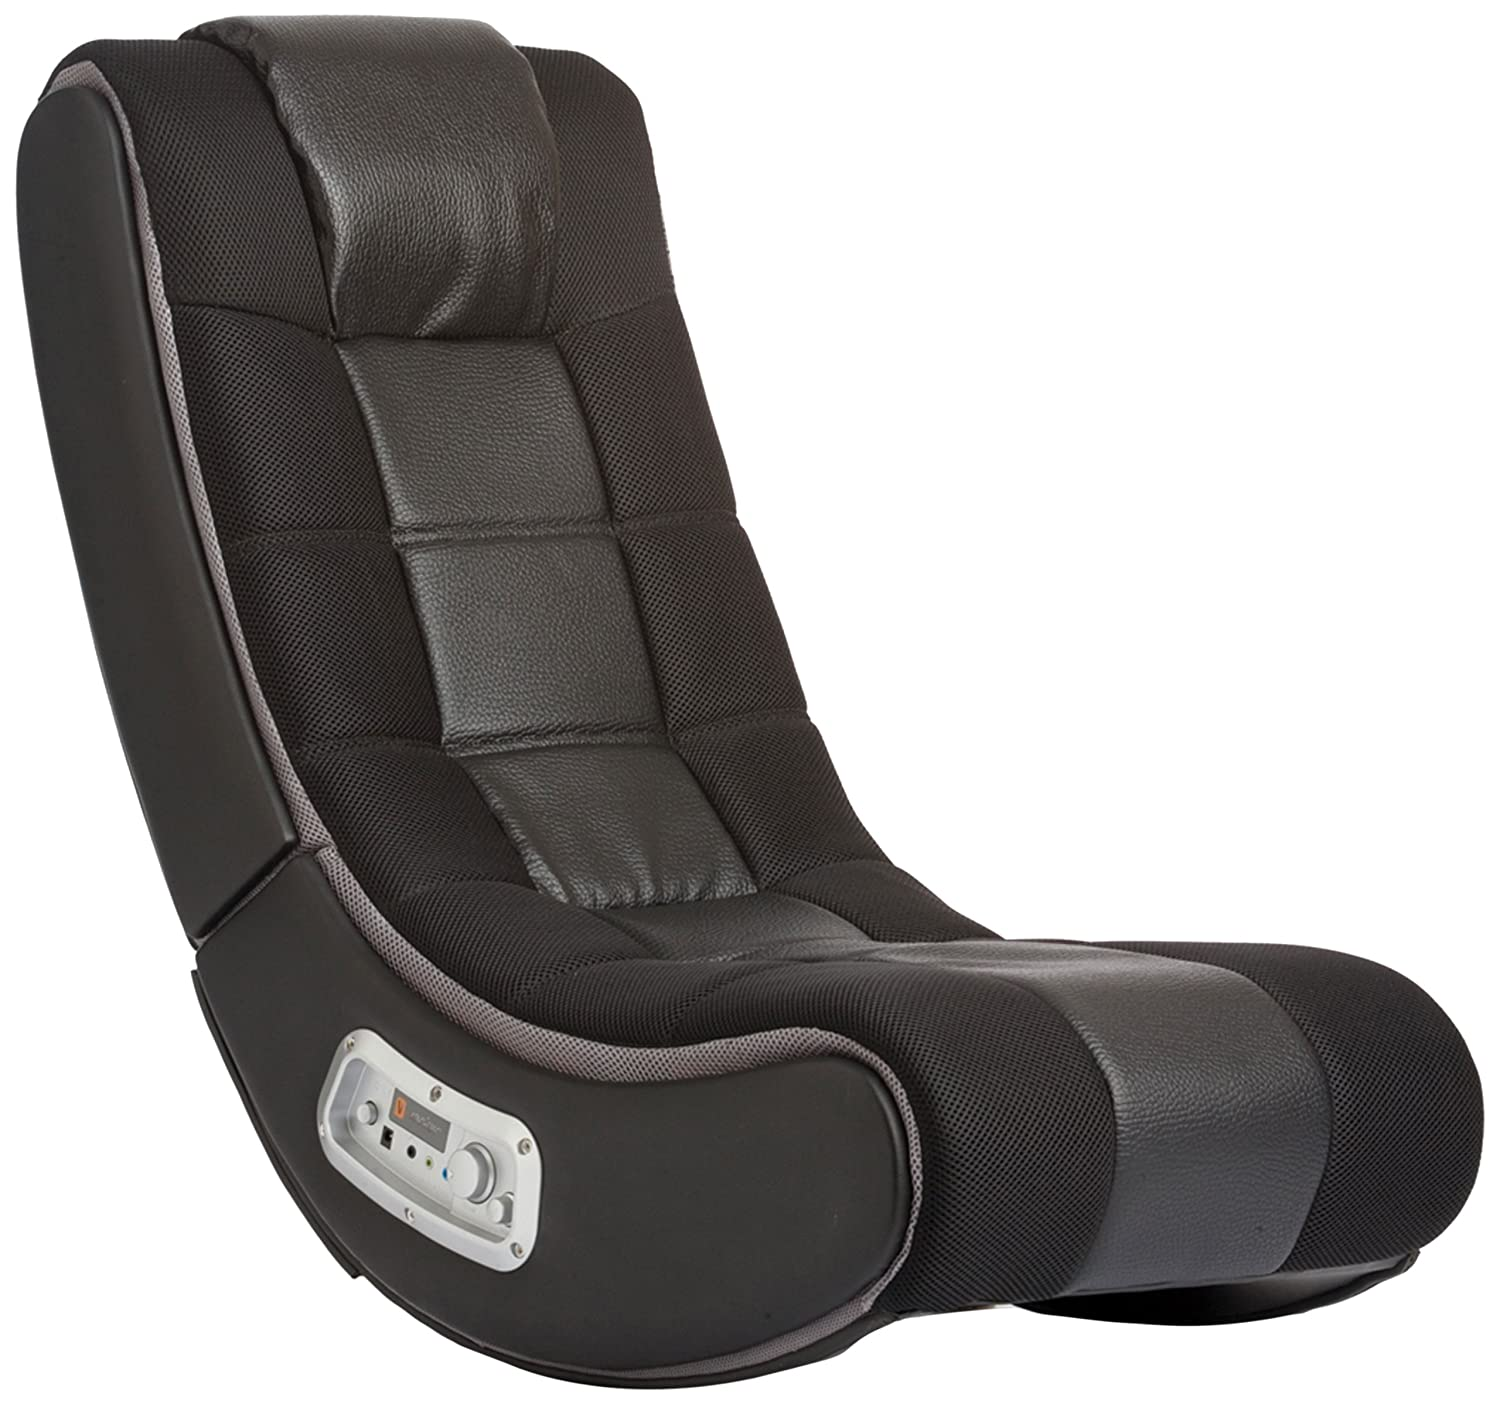 V Rocker 5130301 SE Video Gaming Chair